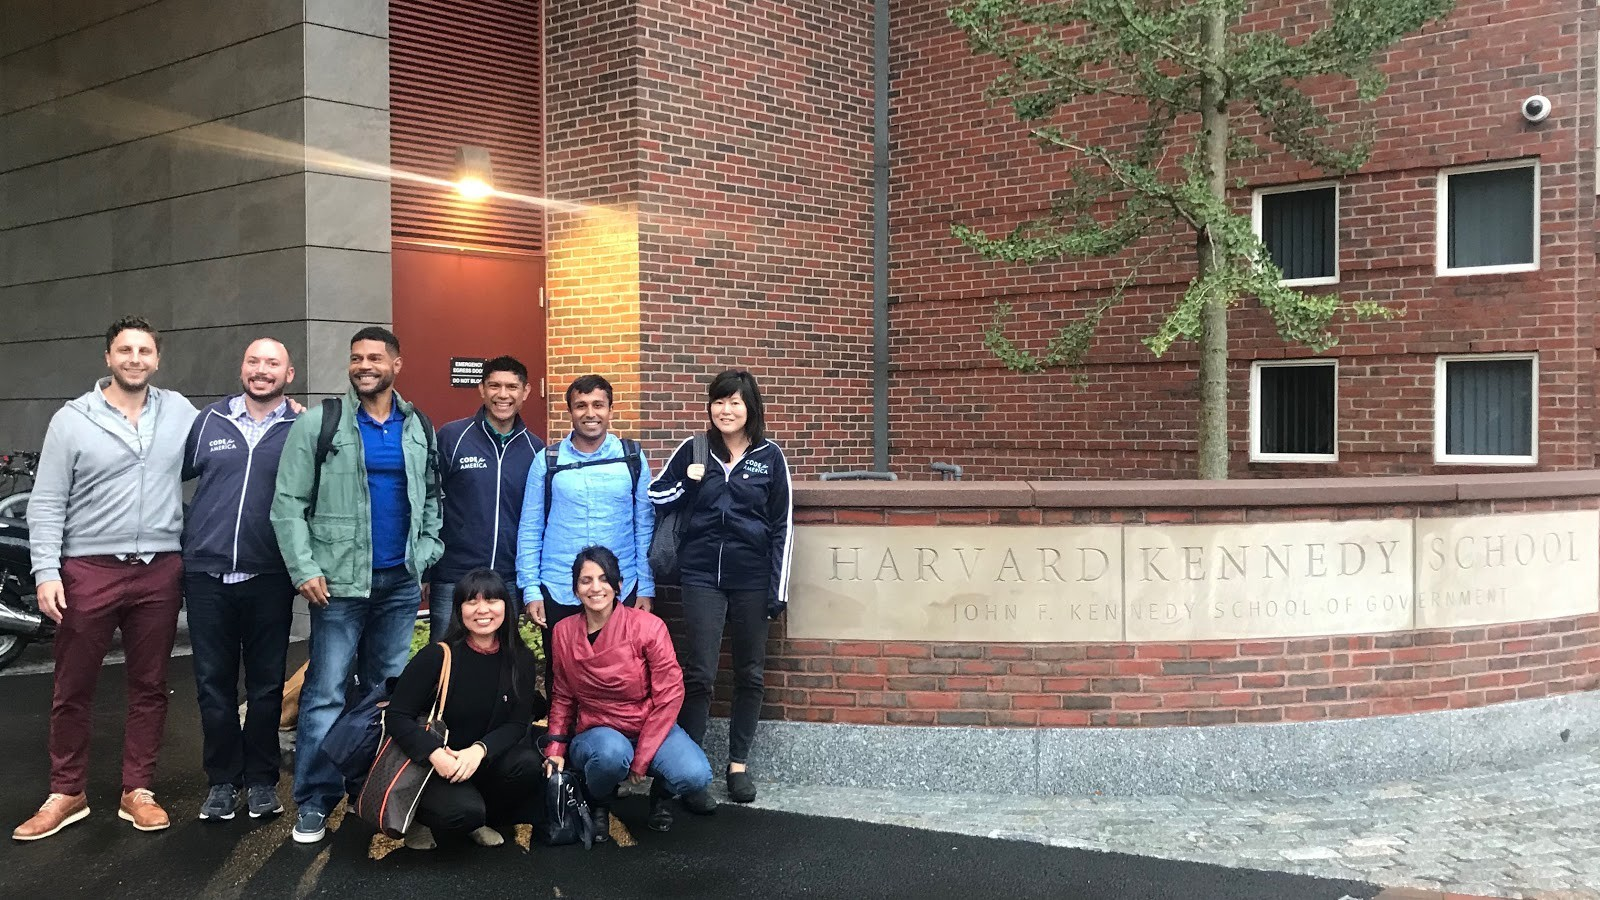 <p>The 2018 Fellows (minus one!) at Harvard Kennedy School of Business's Public Interest Technology Summit</p>